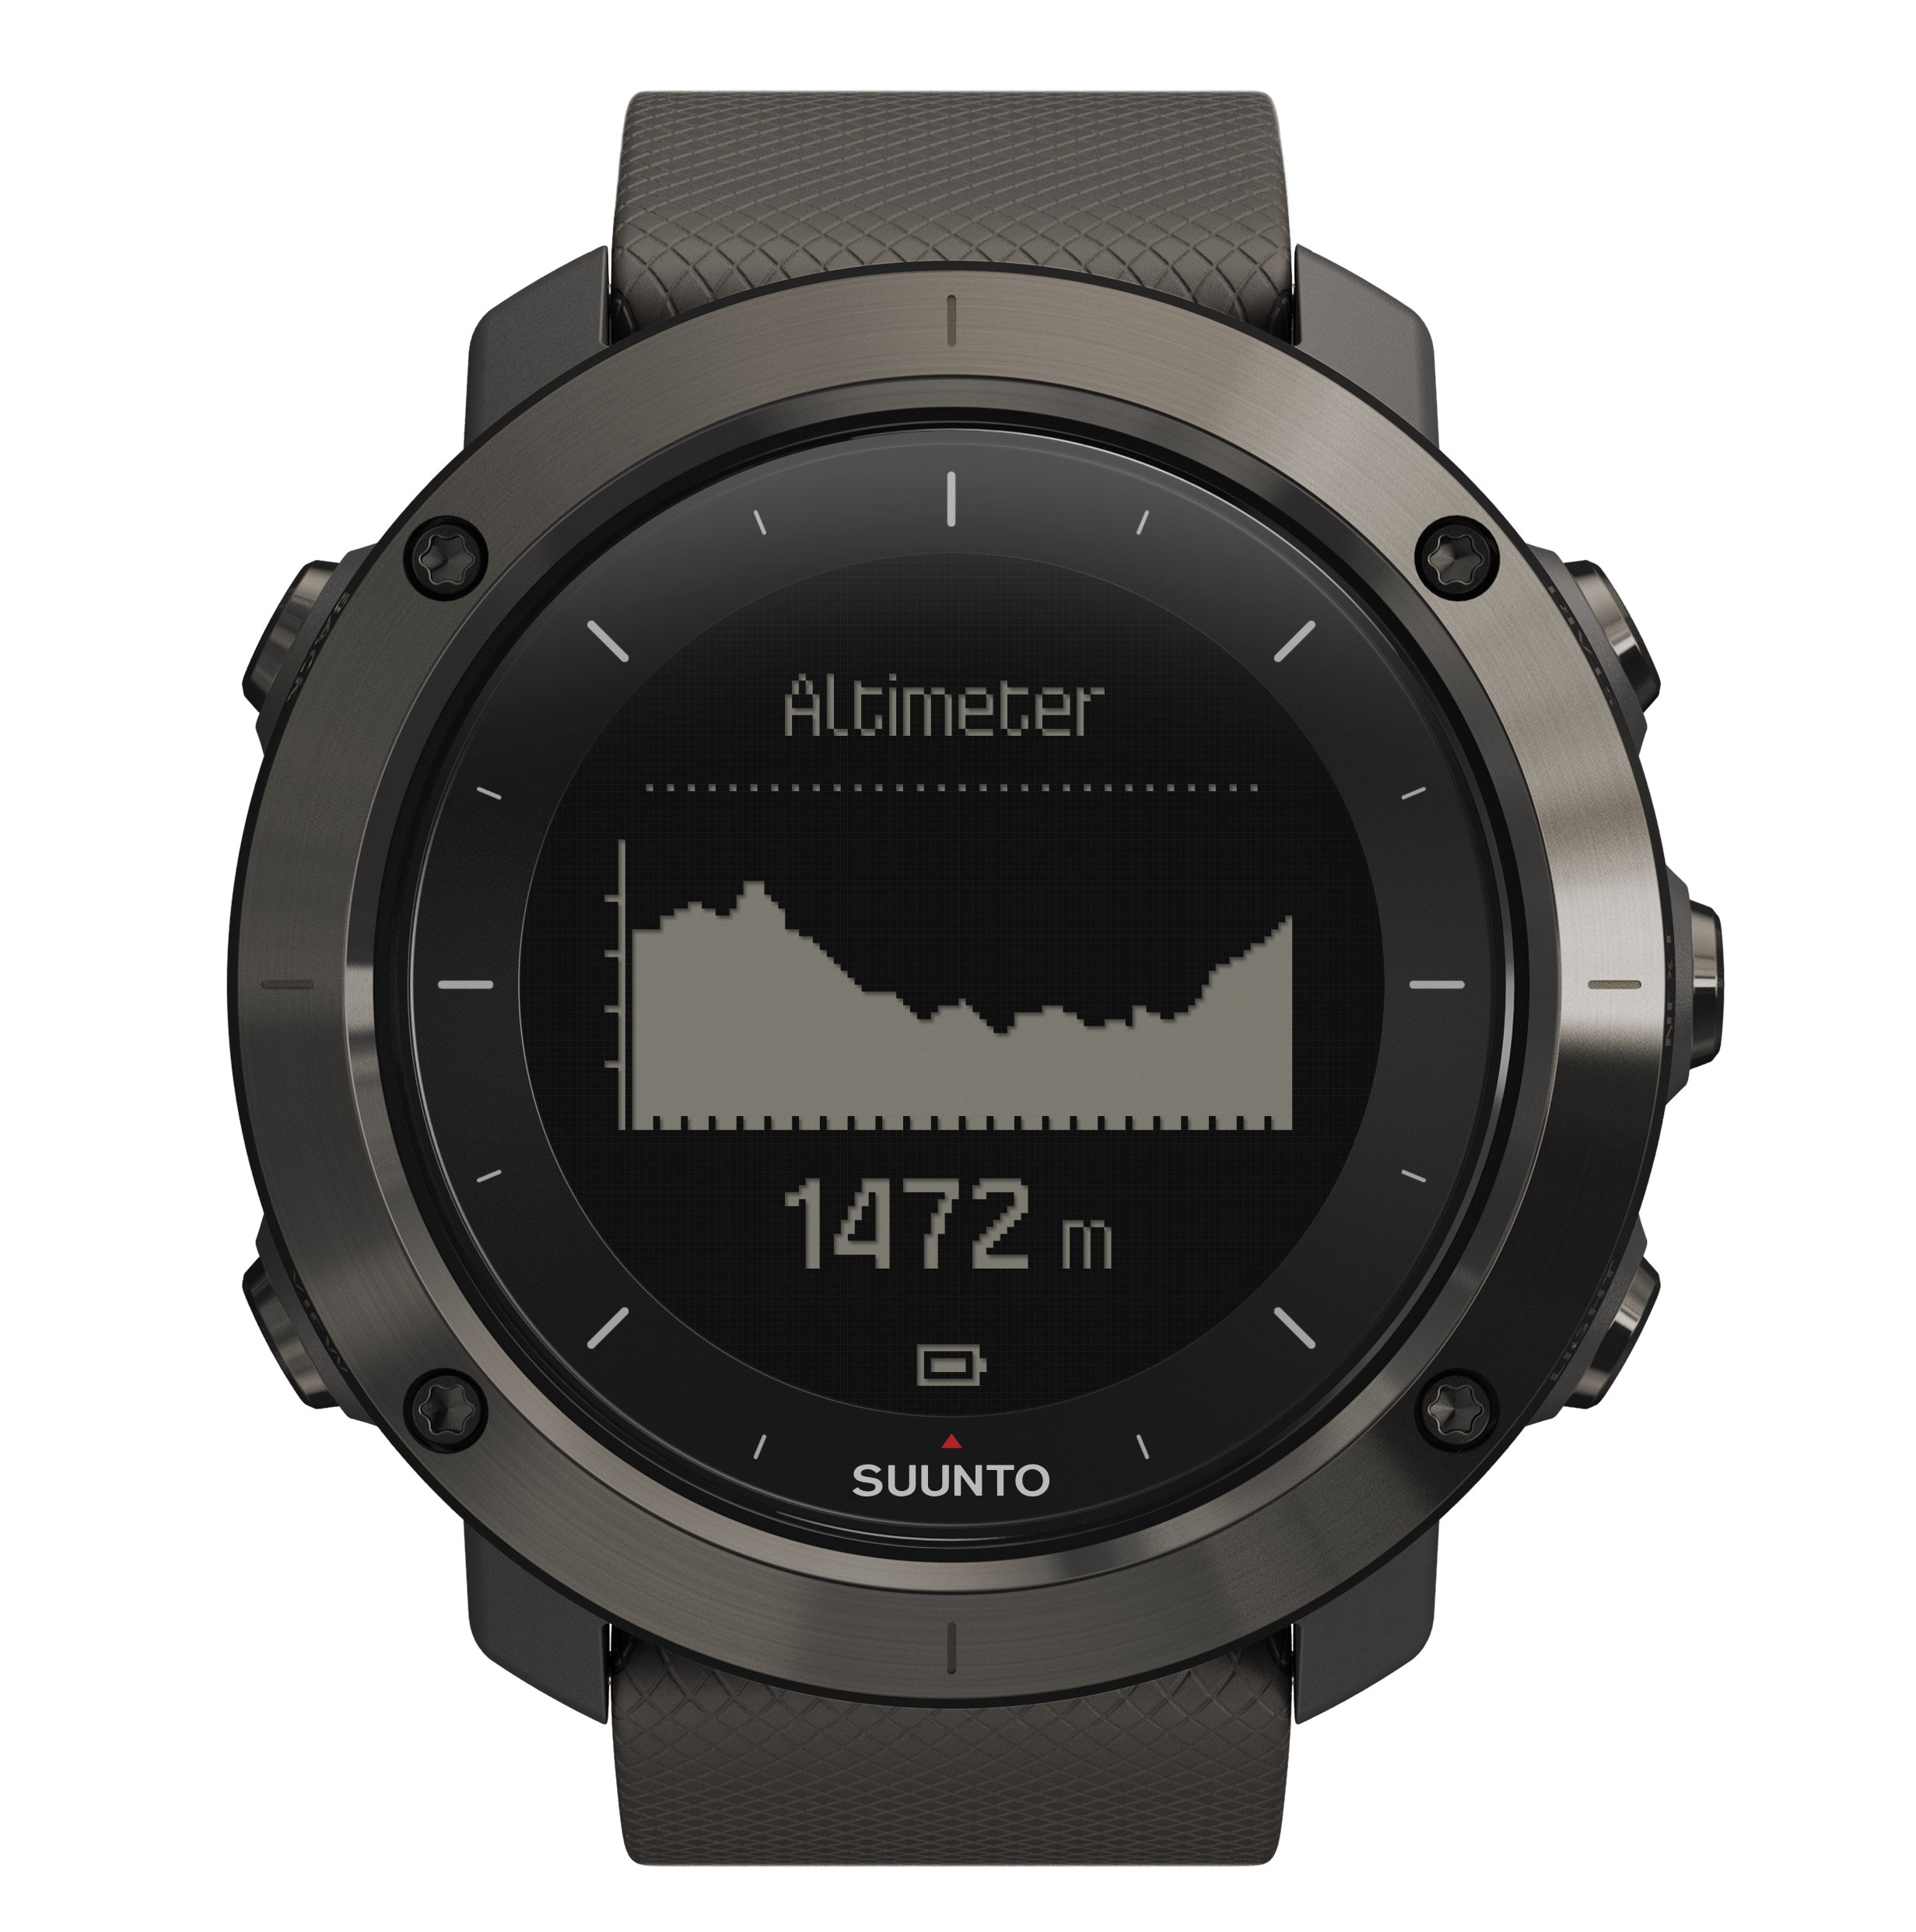 Suunto Traverse GPS Outdoor Hiking Watch with Versatile Navigation Functions and Wearable4U Ultimate Power Pack Bundle (Graphite) by Wearable4u (Image #3)